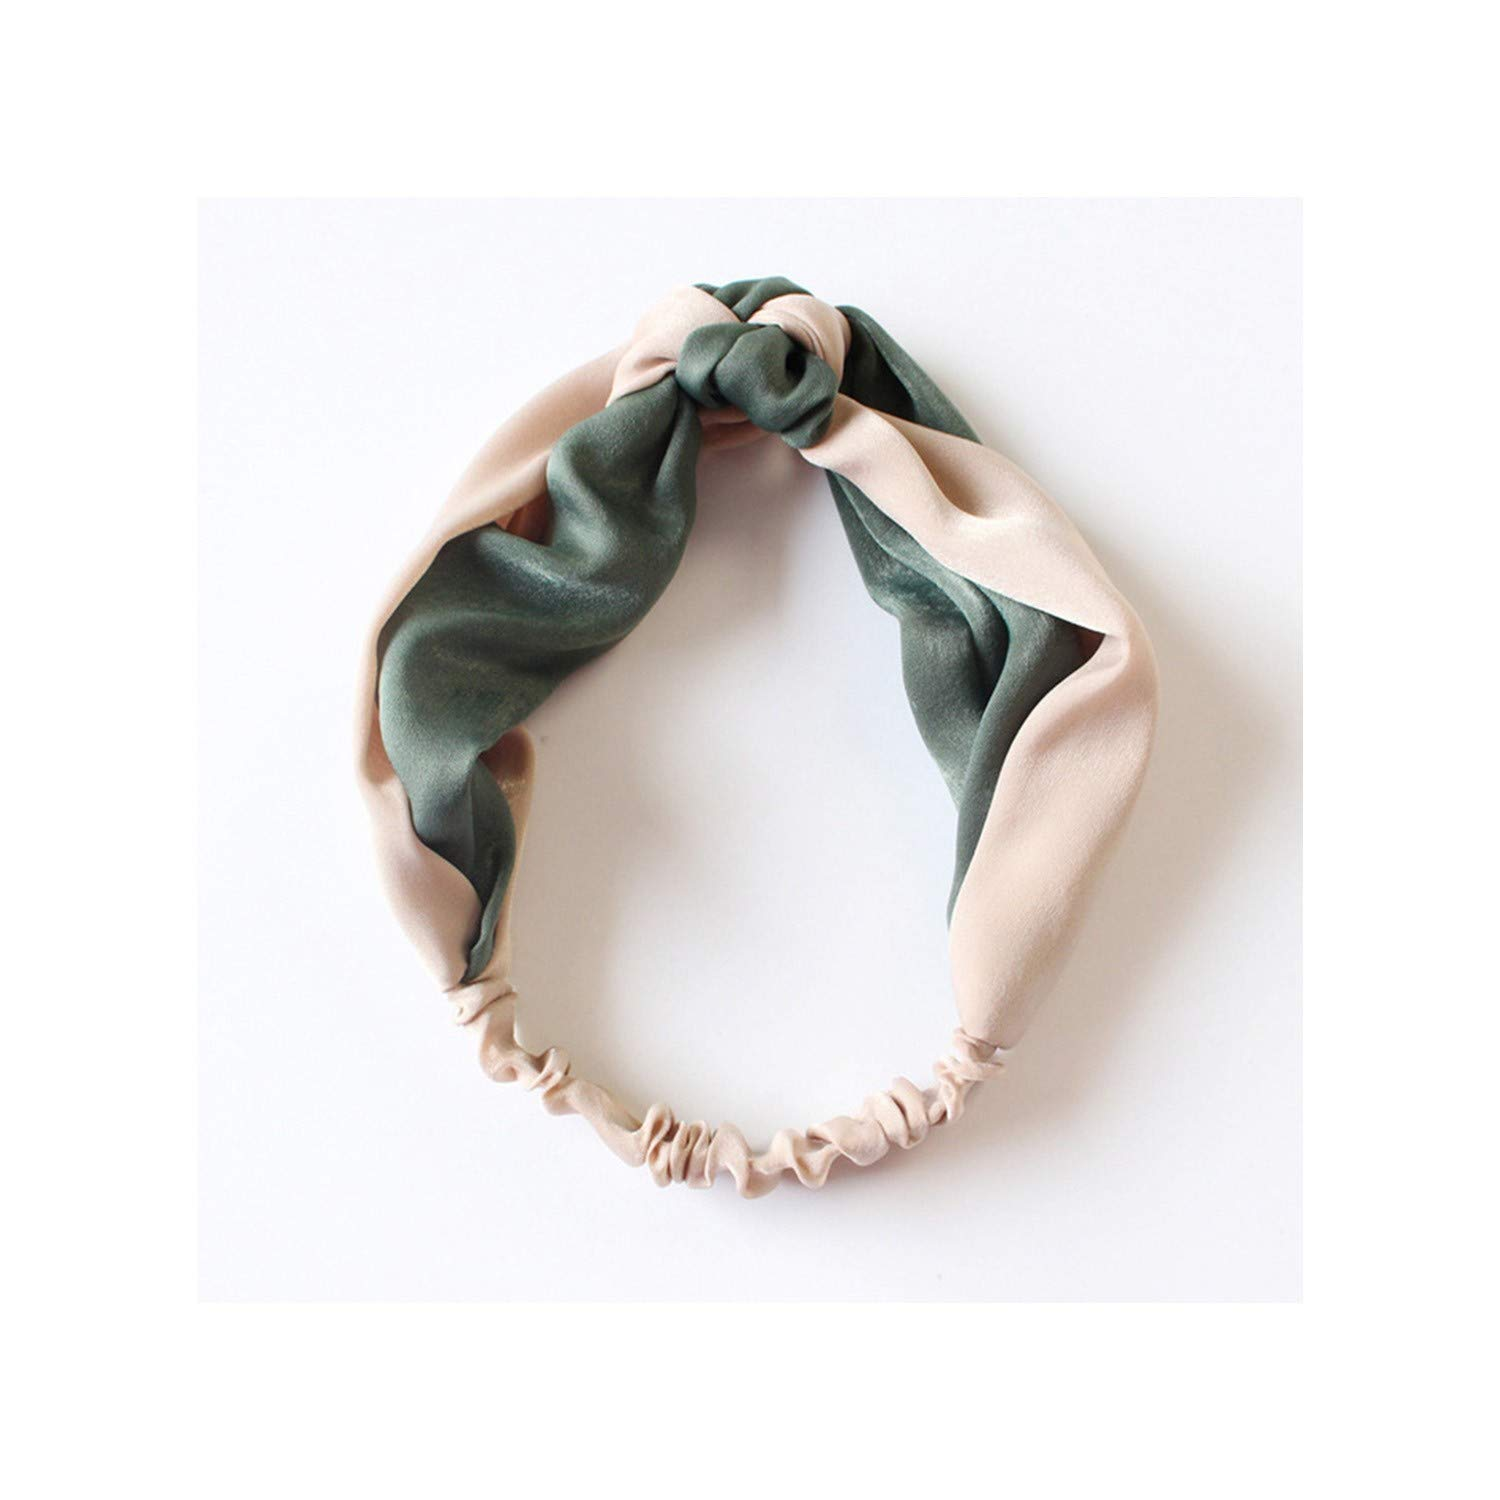 Cotton Women Headband Turban Solid Color Girls Knot Hairband Hair Accessories Makeup Elastic Headwrap,style 7 07